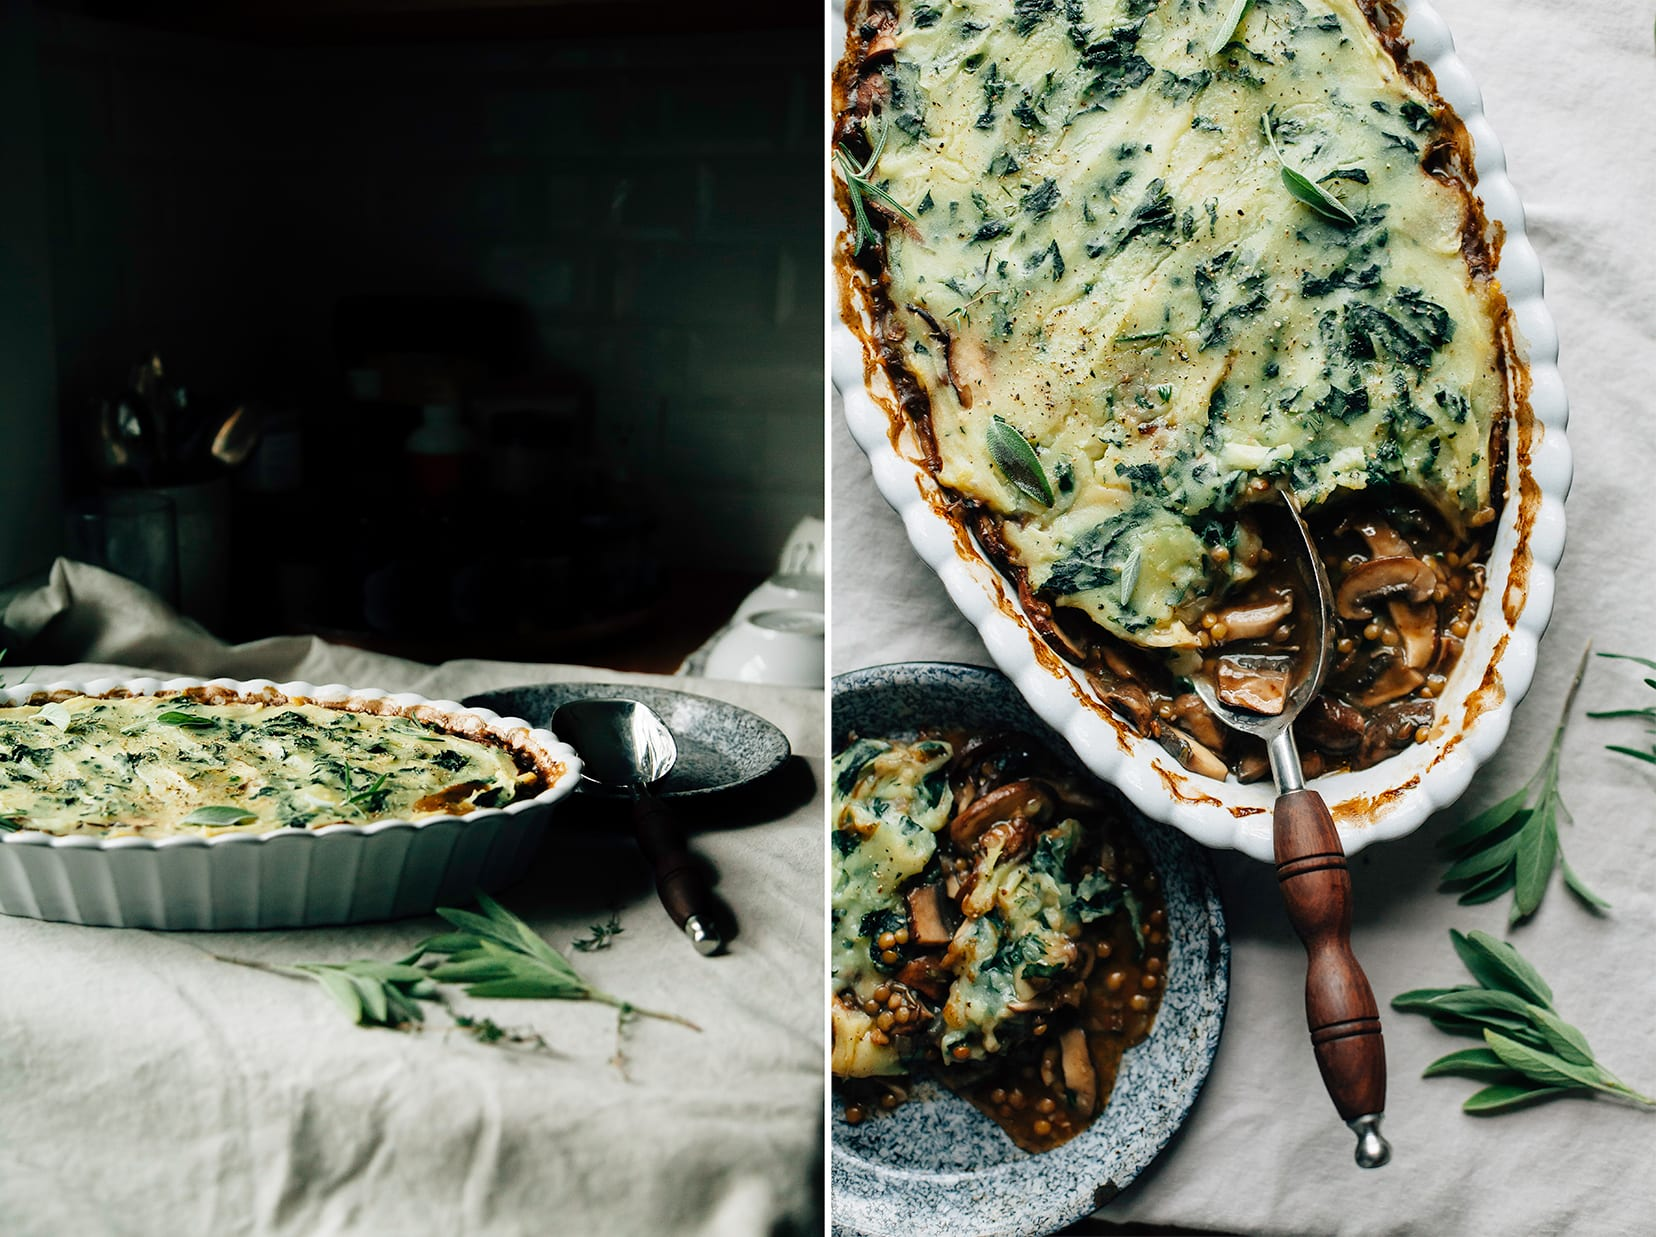 Two images of a mushroom gravy pie topped with kale mashed potatoes in a baking dish, from two different angles.